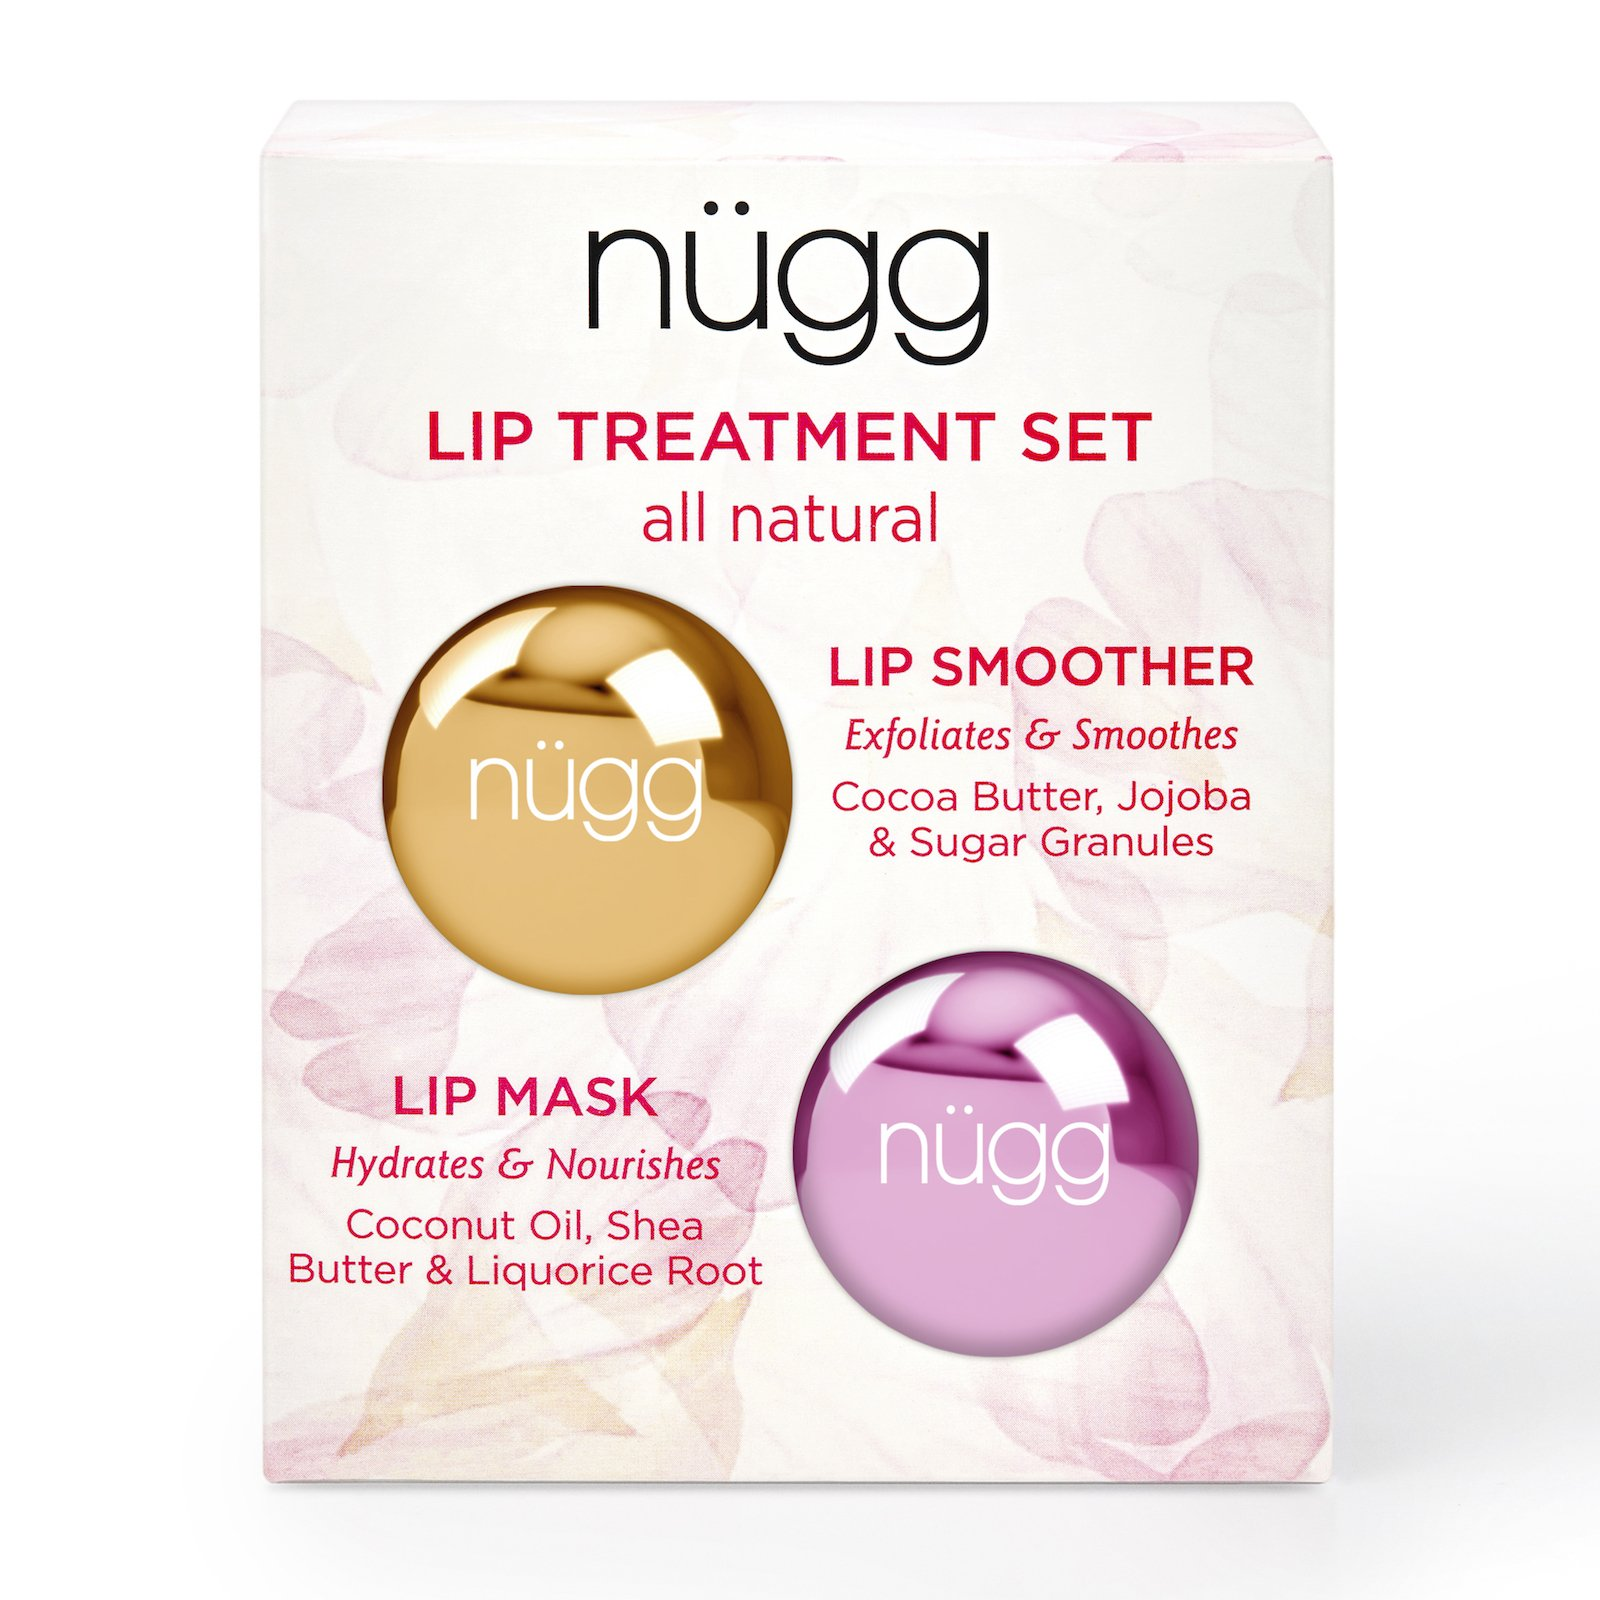 nügg Lip Care Treatment Set for Dry, Chapped Lips; Includes All Natural and Vegan Exfoliating Lip Scrub and Moisturizing Lip Mask; 2 x 7g (2 x 0.24 oz) by